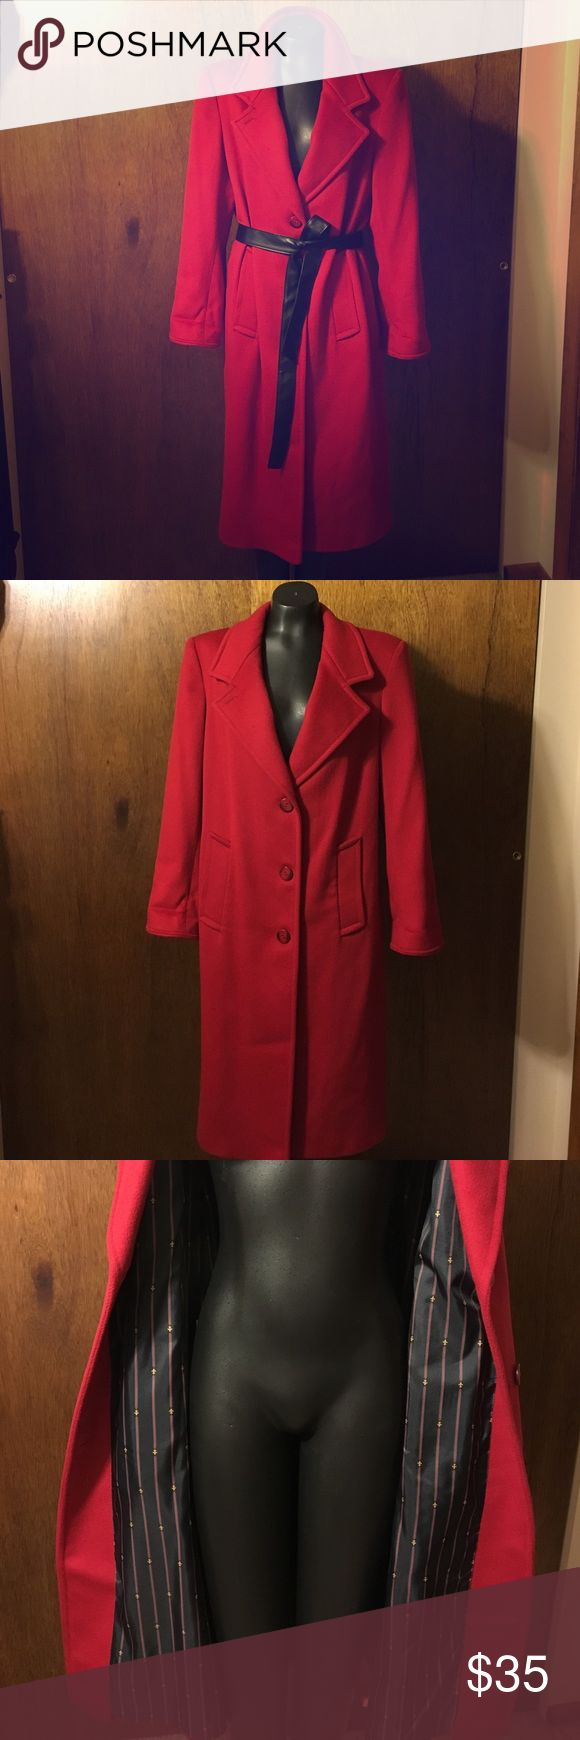 Ashley Scott Red Coat This is gently loved Ashley Scott, red , wool coat. This coat is in amazing condition but does have a hole in the one armpit which can be sewn very easily!! It does not have a size on it, but I included pictures of the length and measurement from shoulder to shoulder. Very warm and a statement piece!!! THE BLACK BELT IS NOT INCLUDED ONLY USED FOR STYLING IDEAS!!!!! Get this amaZing coat while you can!! Was recently dry cleaned!!! Ashley Scott Jackets & Coats